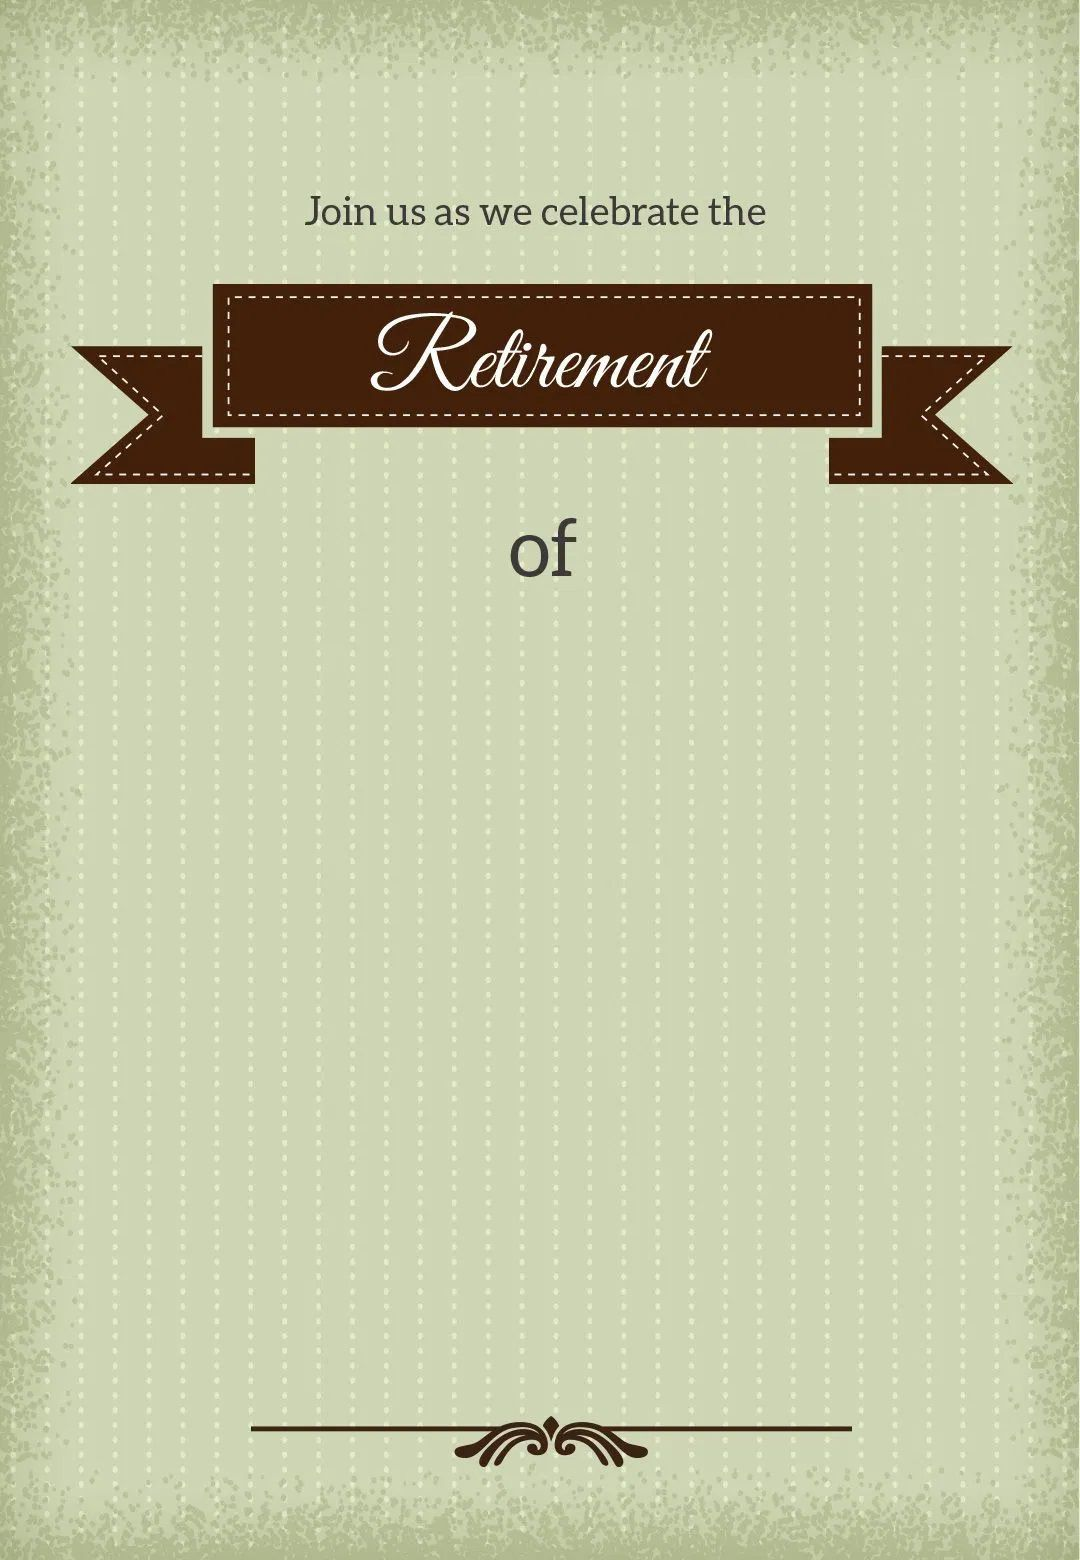 009 Magnificent Free Retirement Invitation Template Highest Clarity  Templates Microsoft Word Party FlyerFull